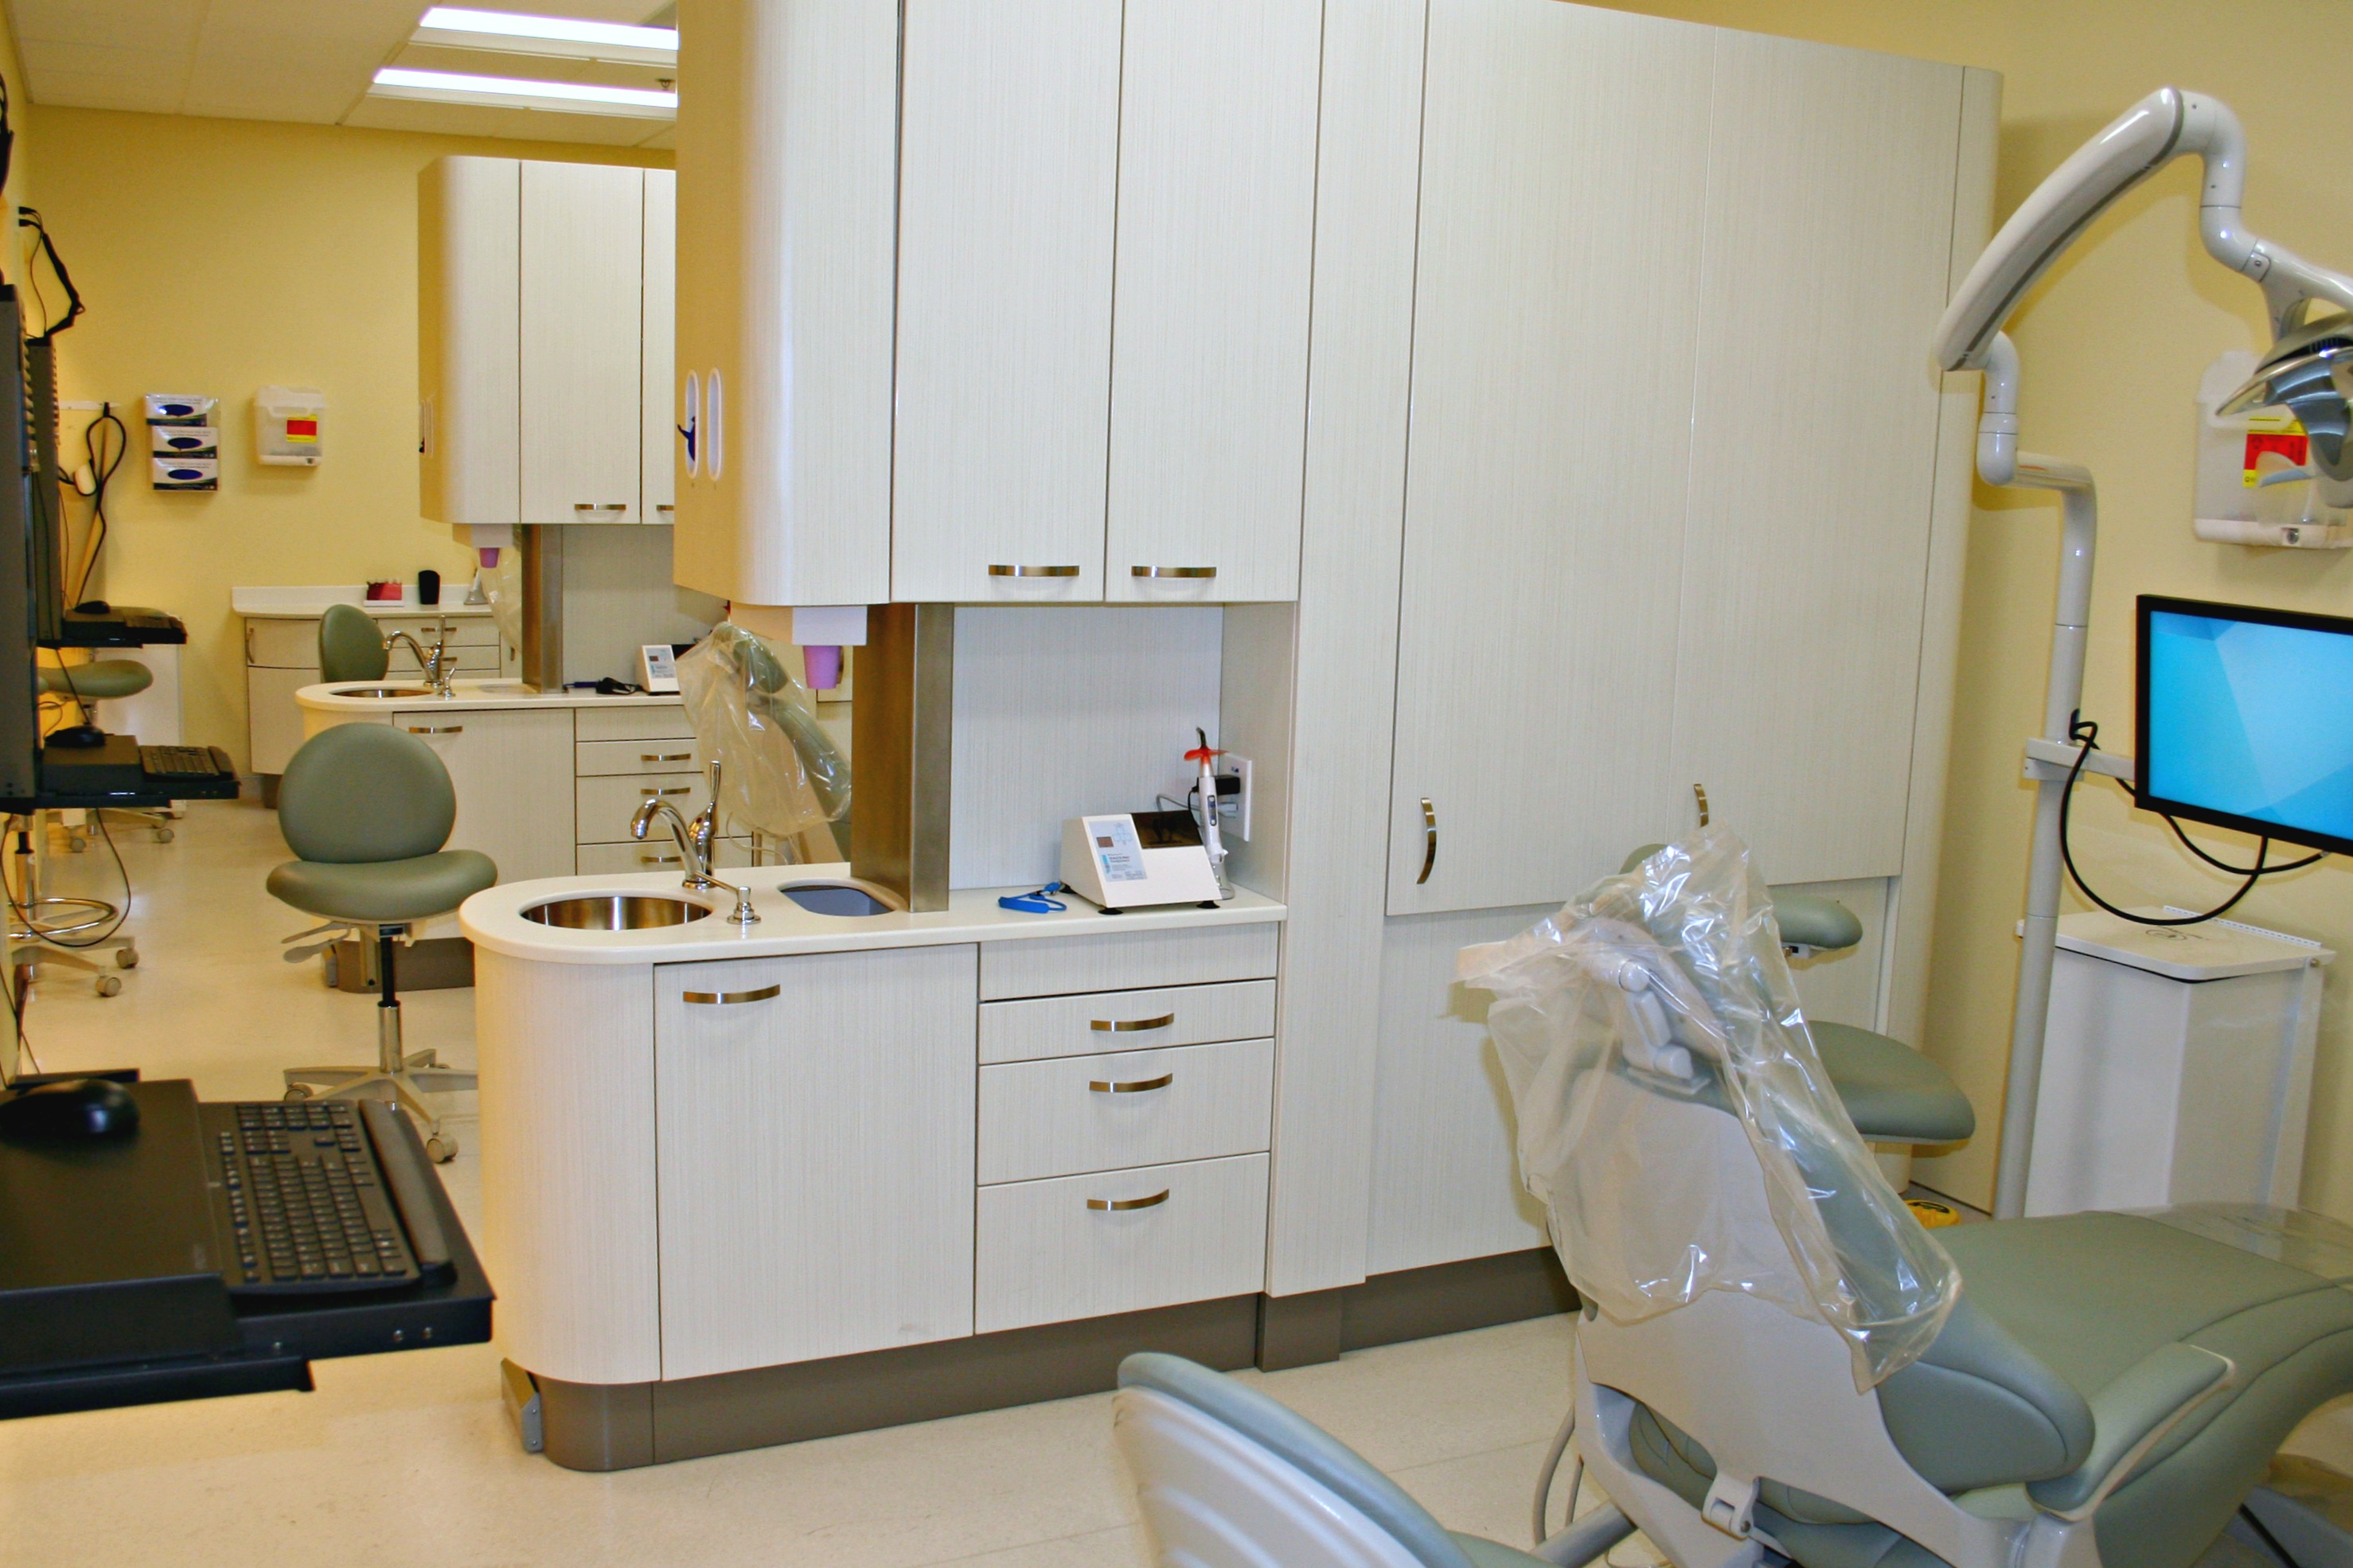 General Contractor Builds Los Angeles Medical Dental Facility Construction